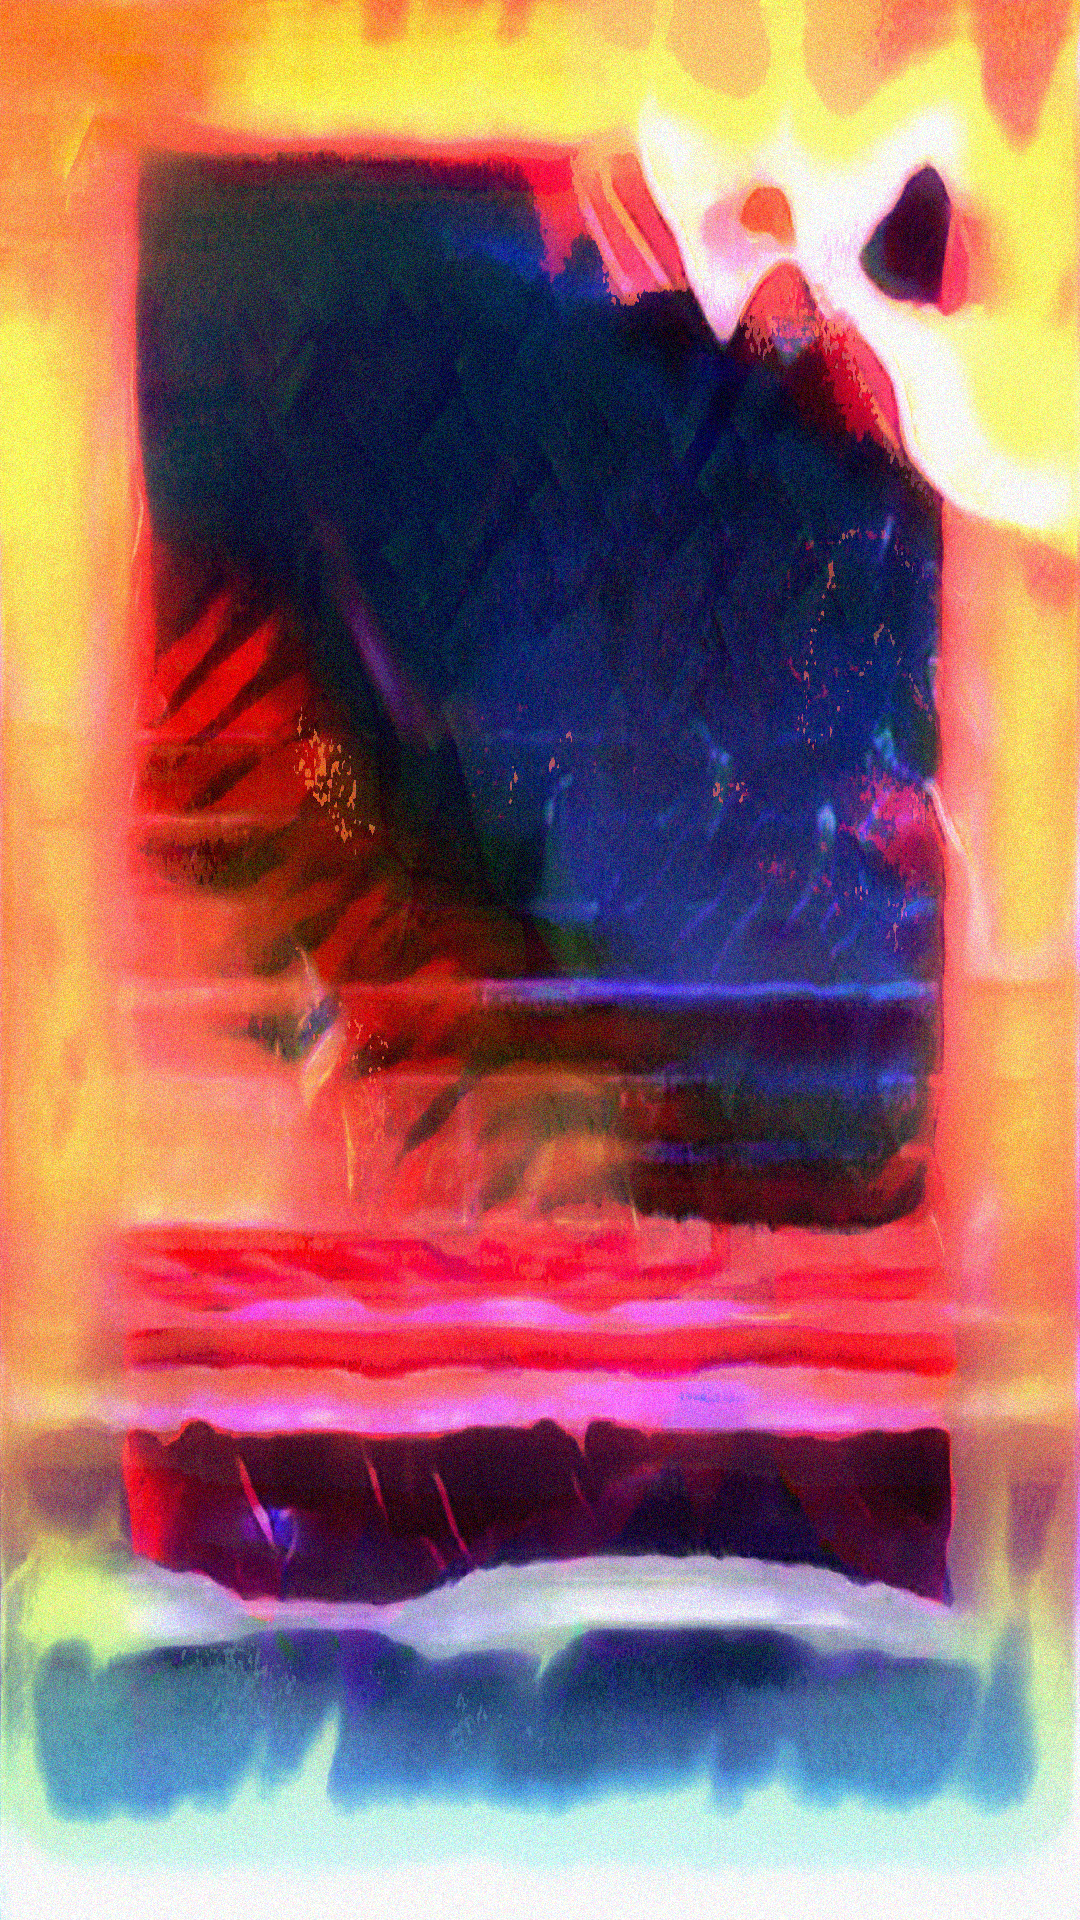 4_00040.png